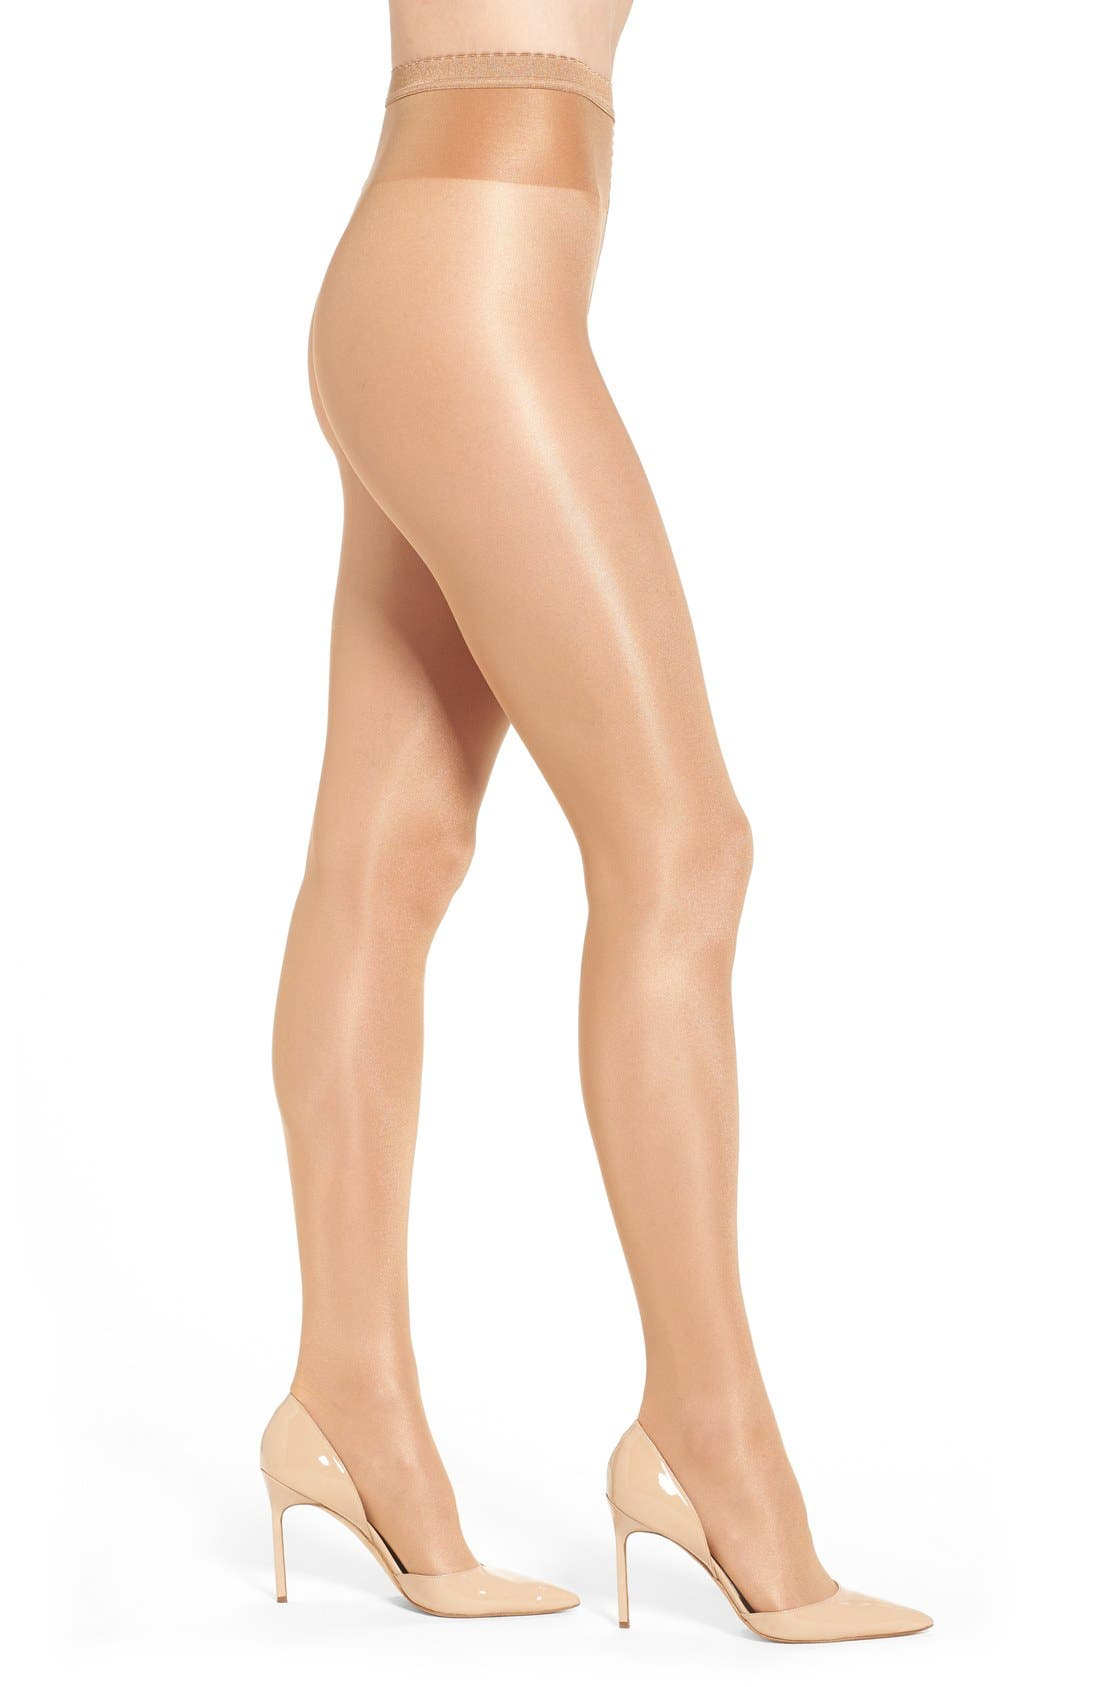 'Neon 40' Pantyhose,                         Main,                         color, Gobi